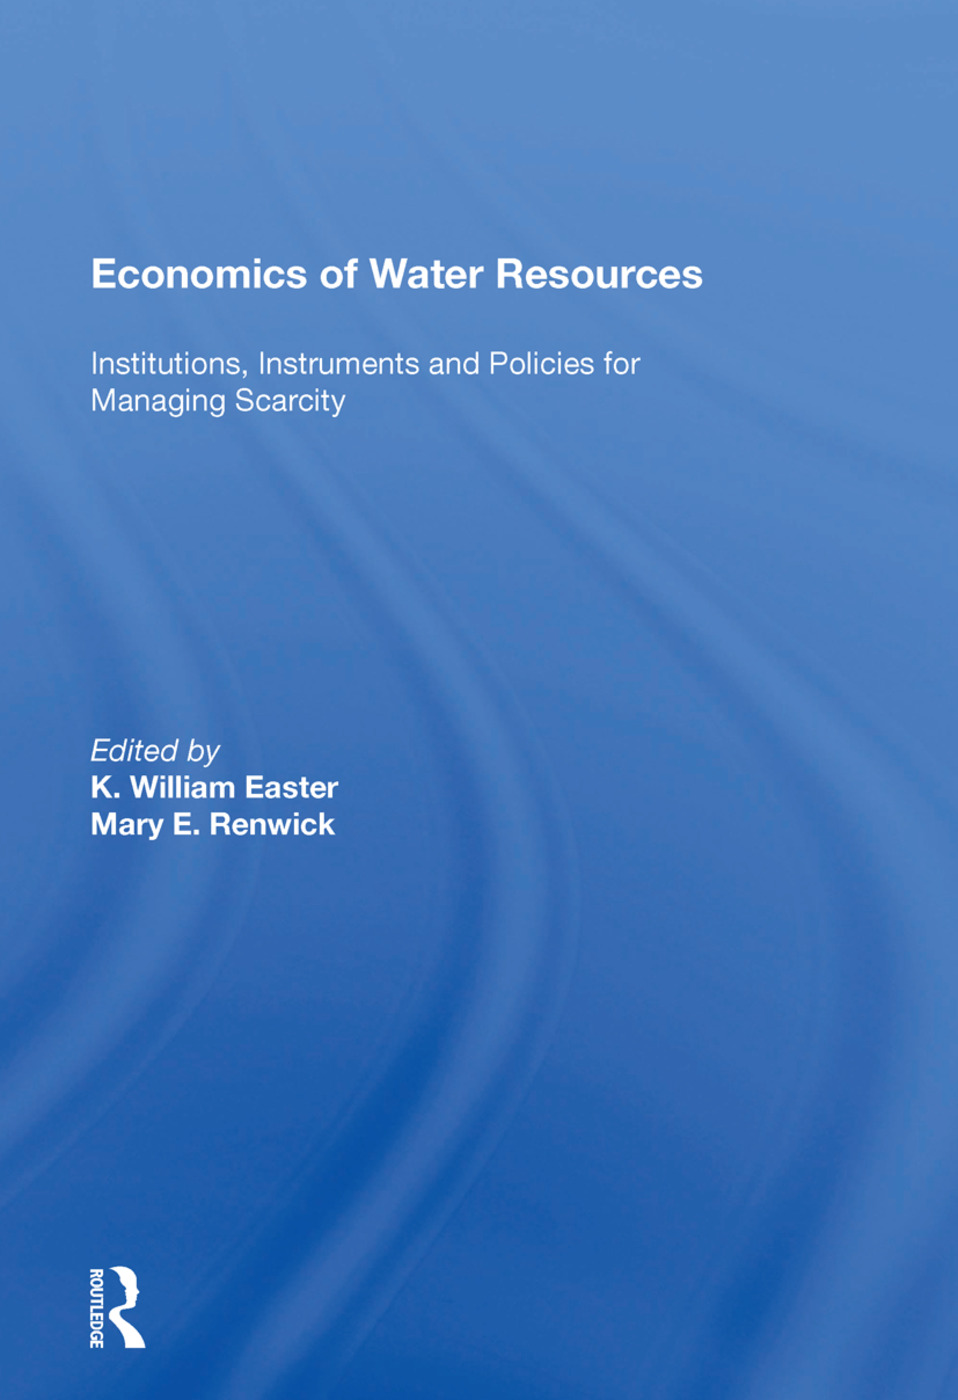 Economics of Water Resources: Institutions, Instruments and Policies for Managing Scarcity, 1st Edition (Paperback) book cover